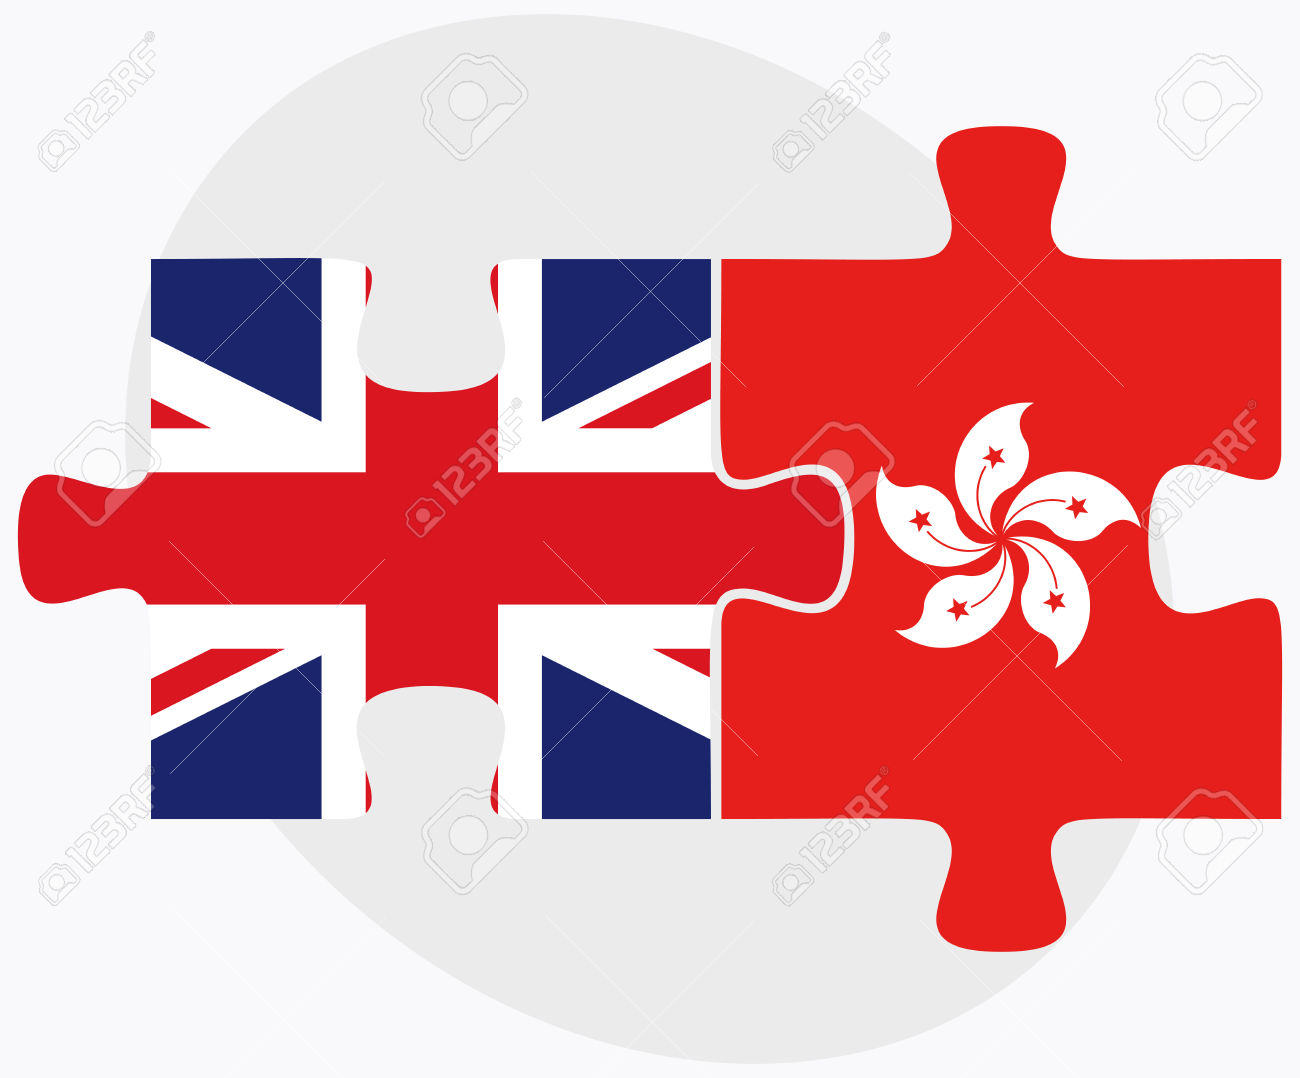 United Kingdom And Hong Kong SAR China Flags In Puzzle Isolated.